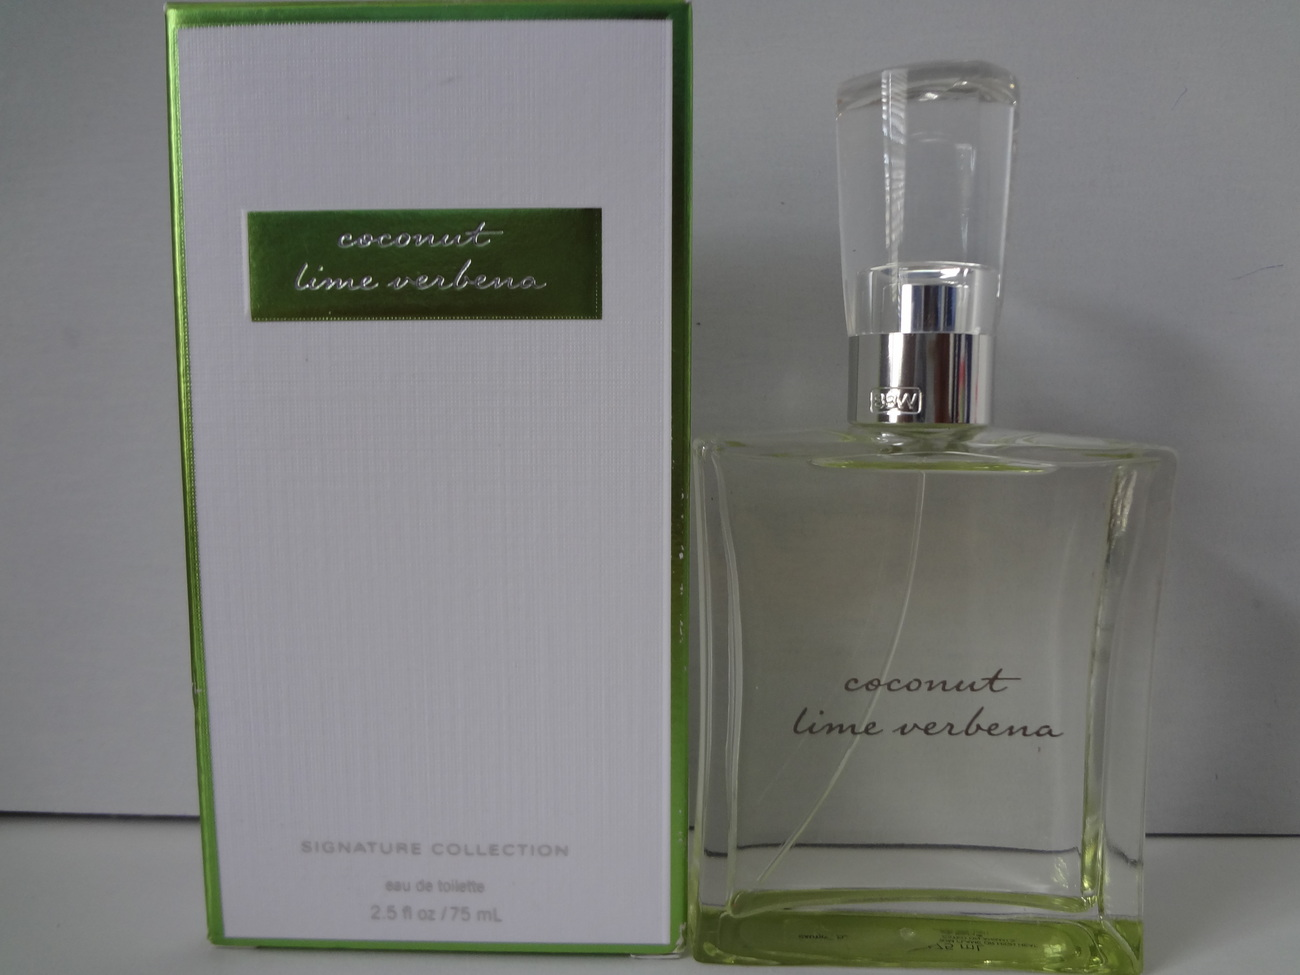 Bath & Body Works Coconut Lime Verbena Eau De Toilette 2.5 oz / 75 ml